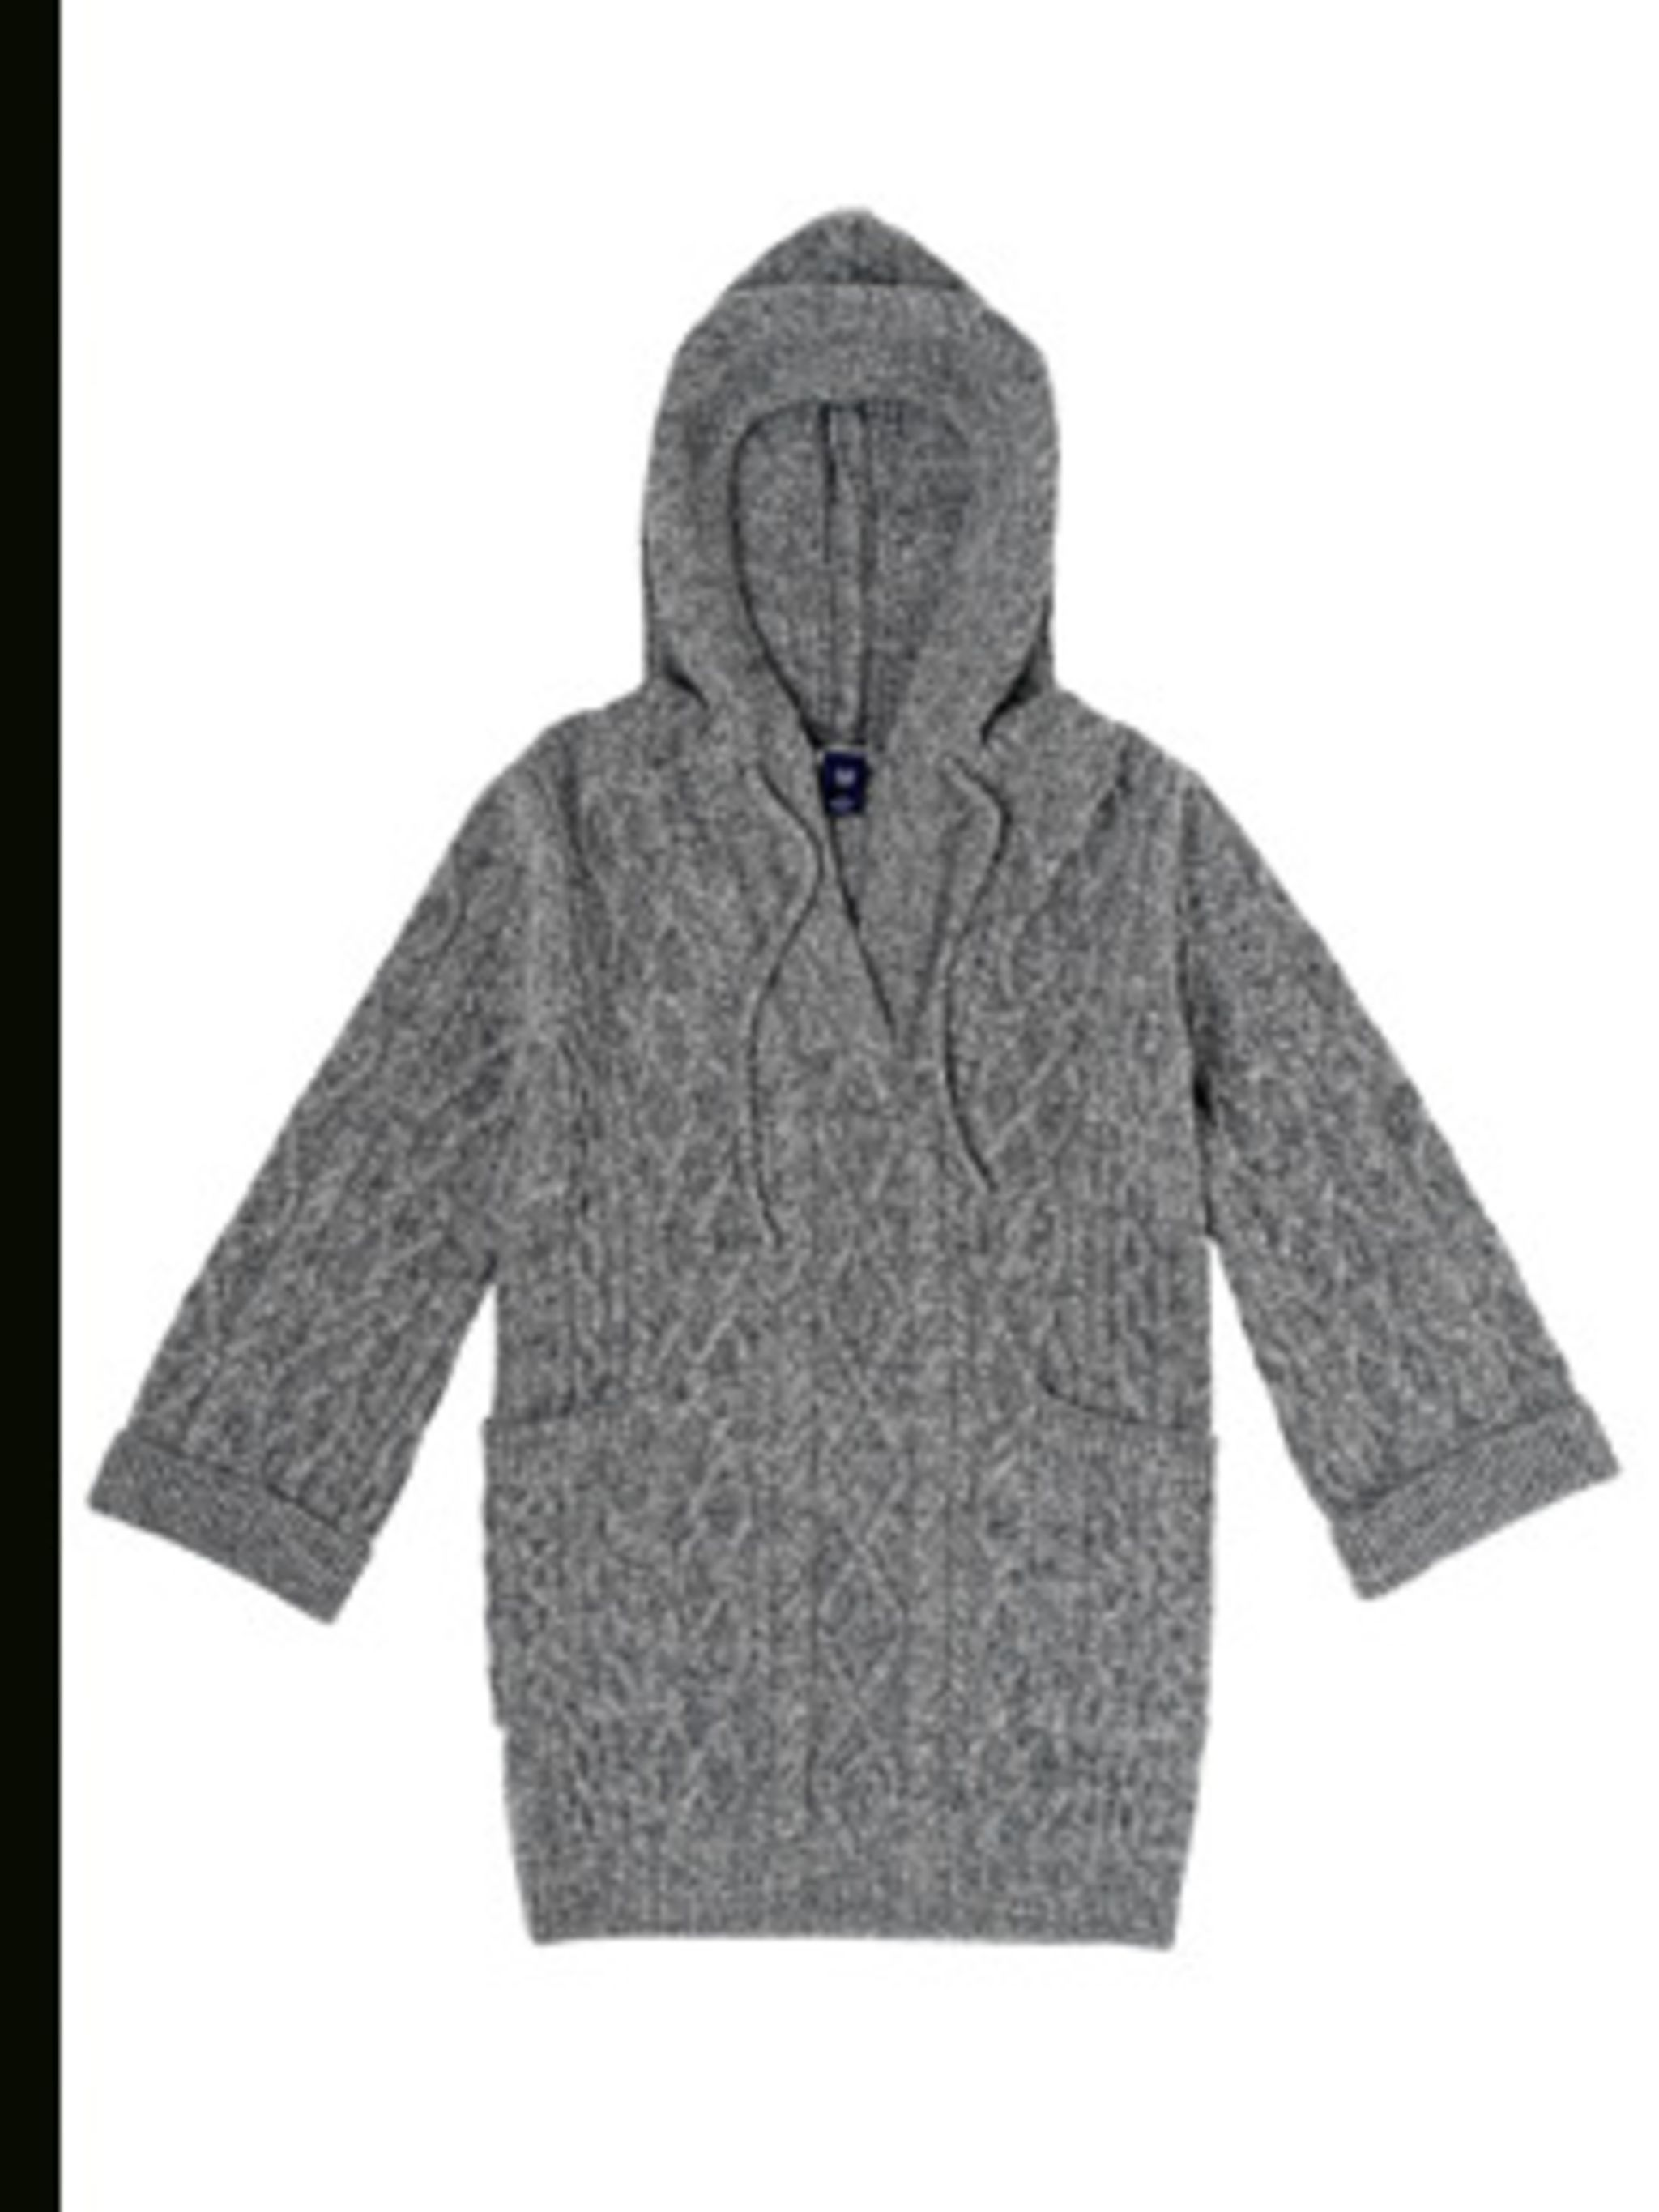 <p>Grey Chunky Knit Hooded Jumper, £45 by Gap 0800427789</p>